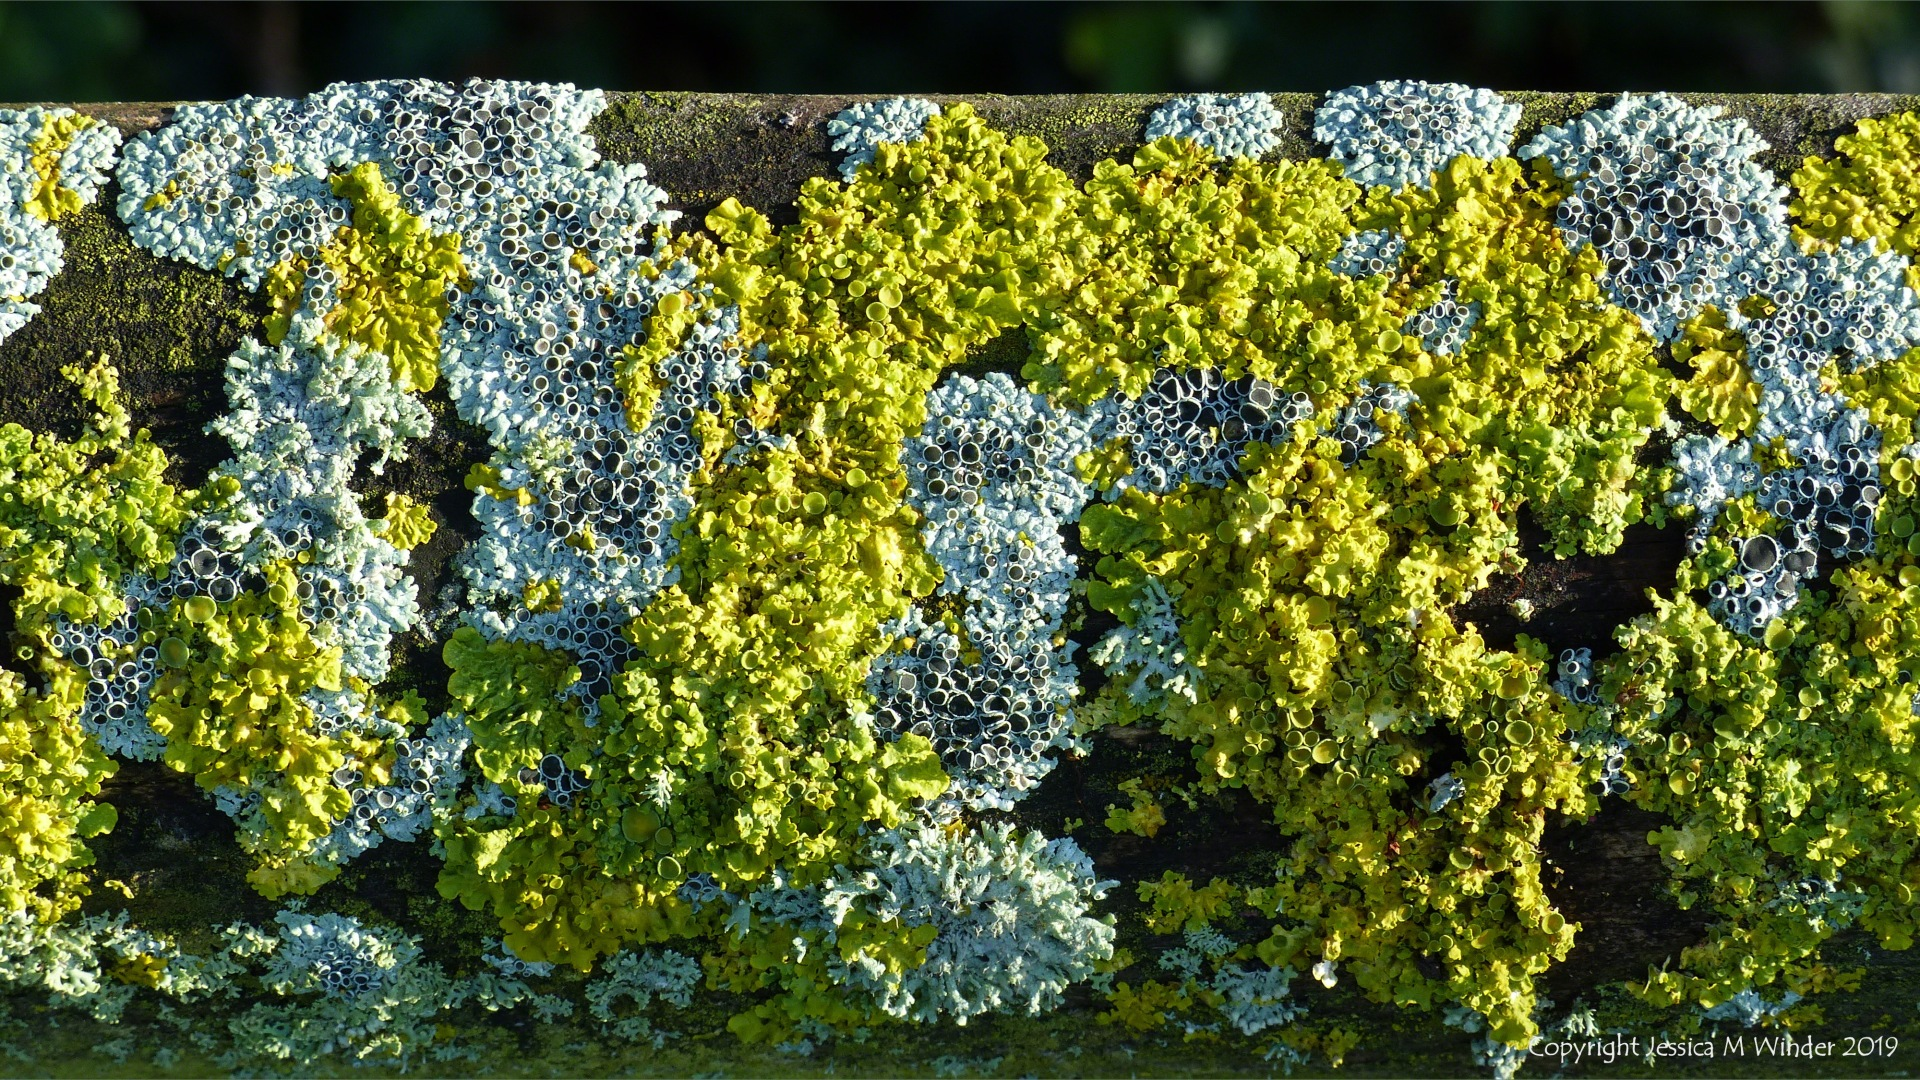 Colonies of lichen on a fence post